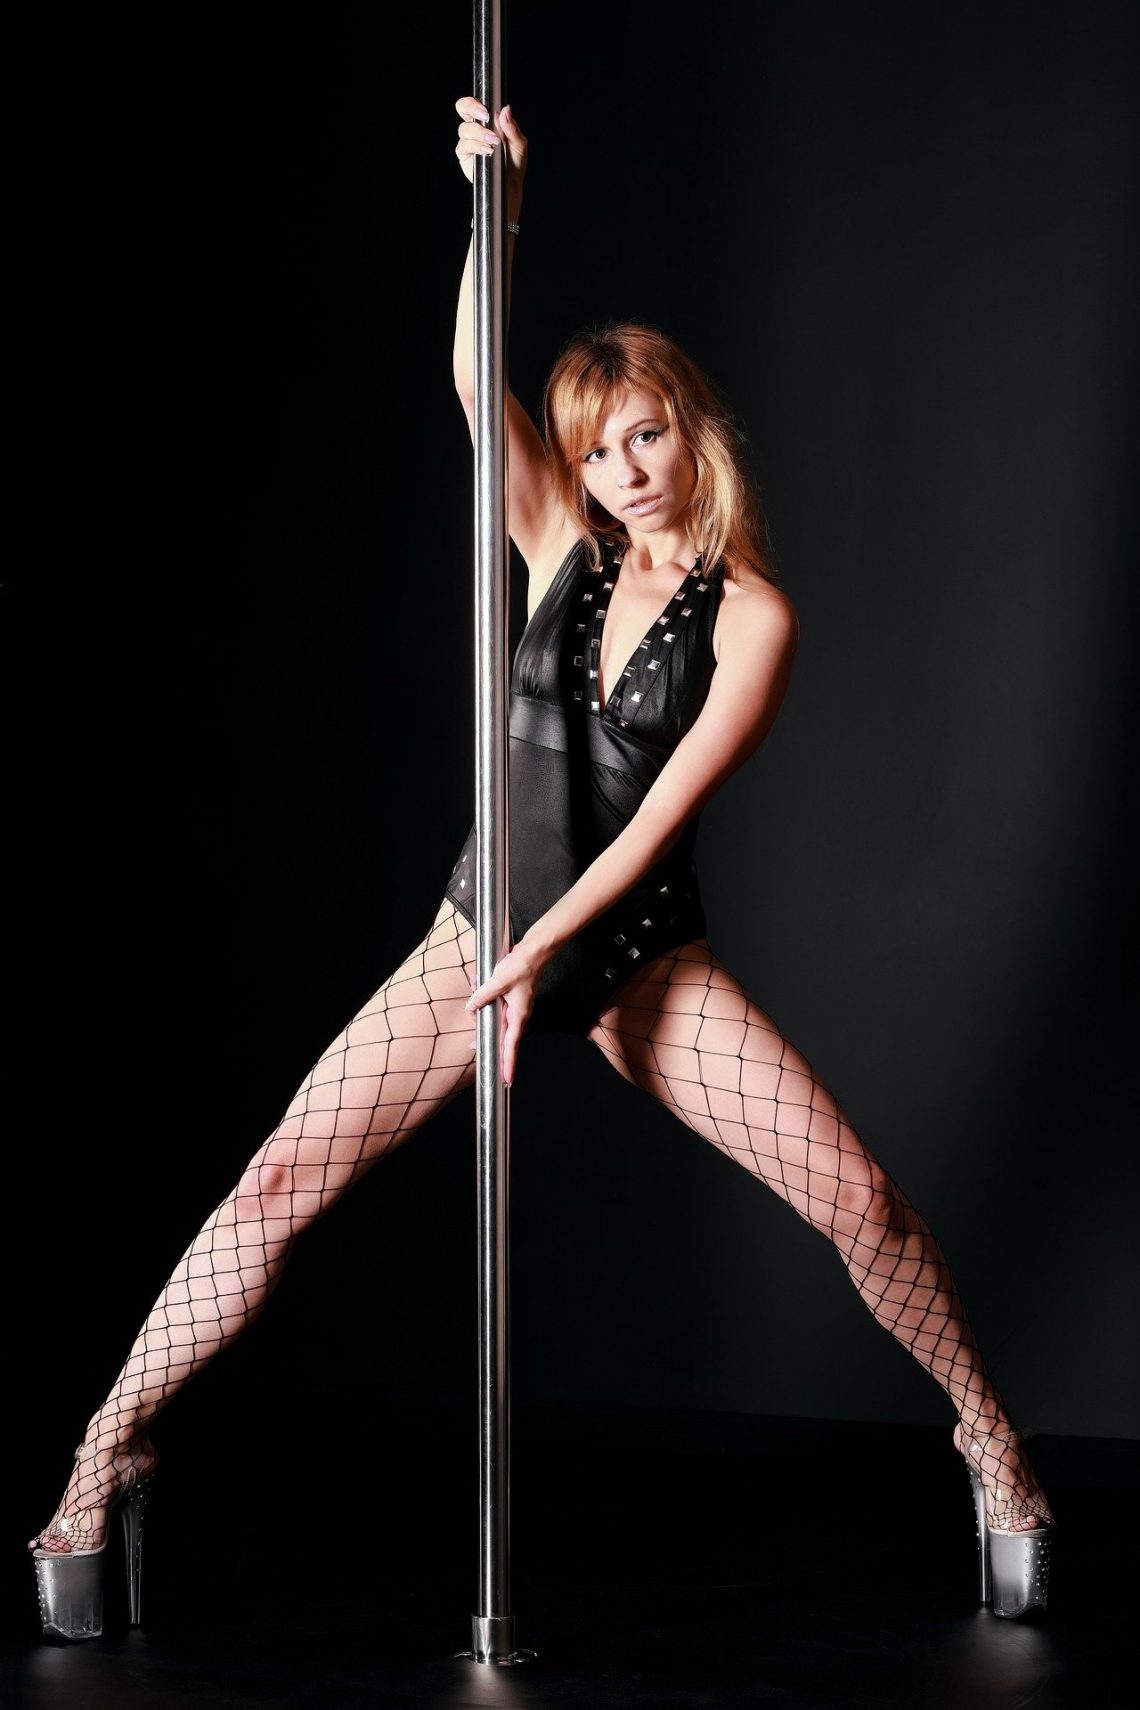 Stripper Booking App Making It Easy For Everyone!